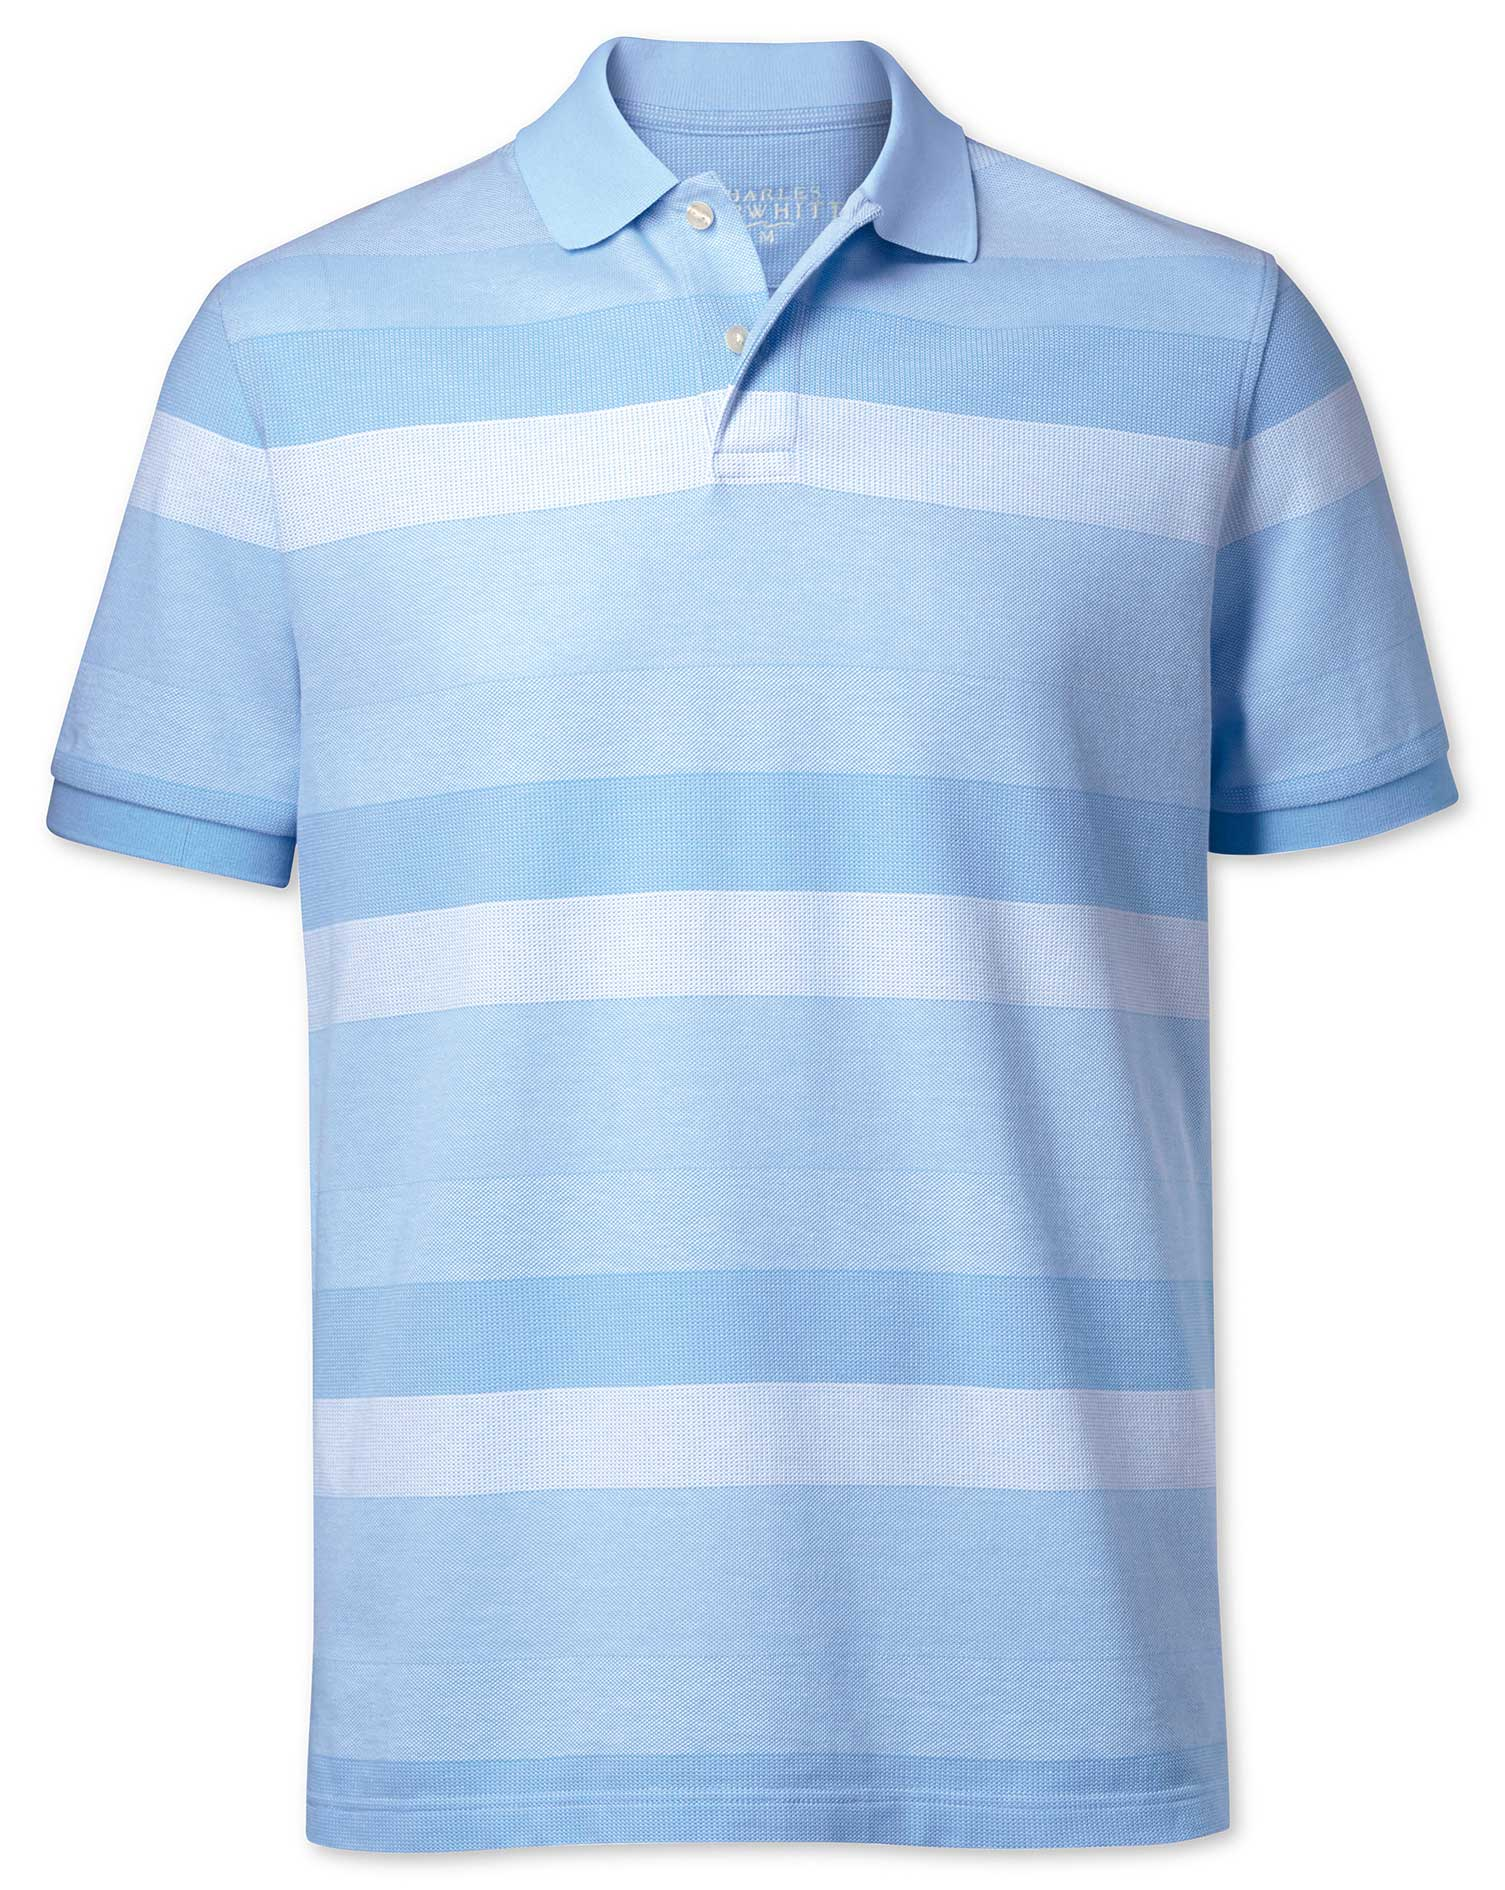 Sky Blue and White Textured Stripe Cotton Polo Size XS by Charles Tyrwhitt